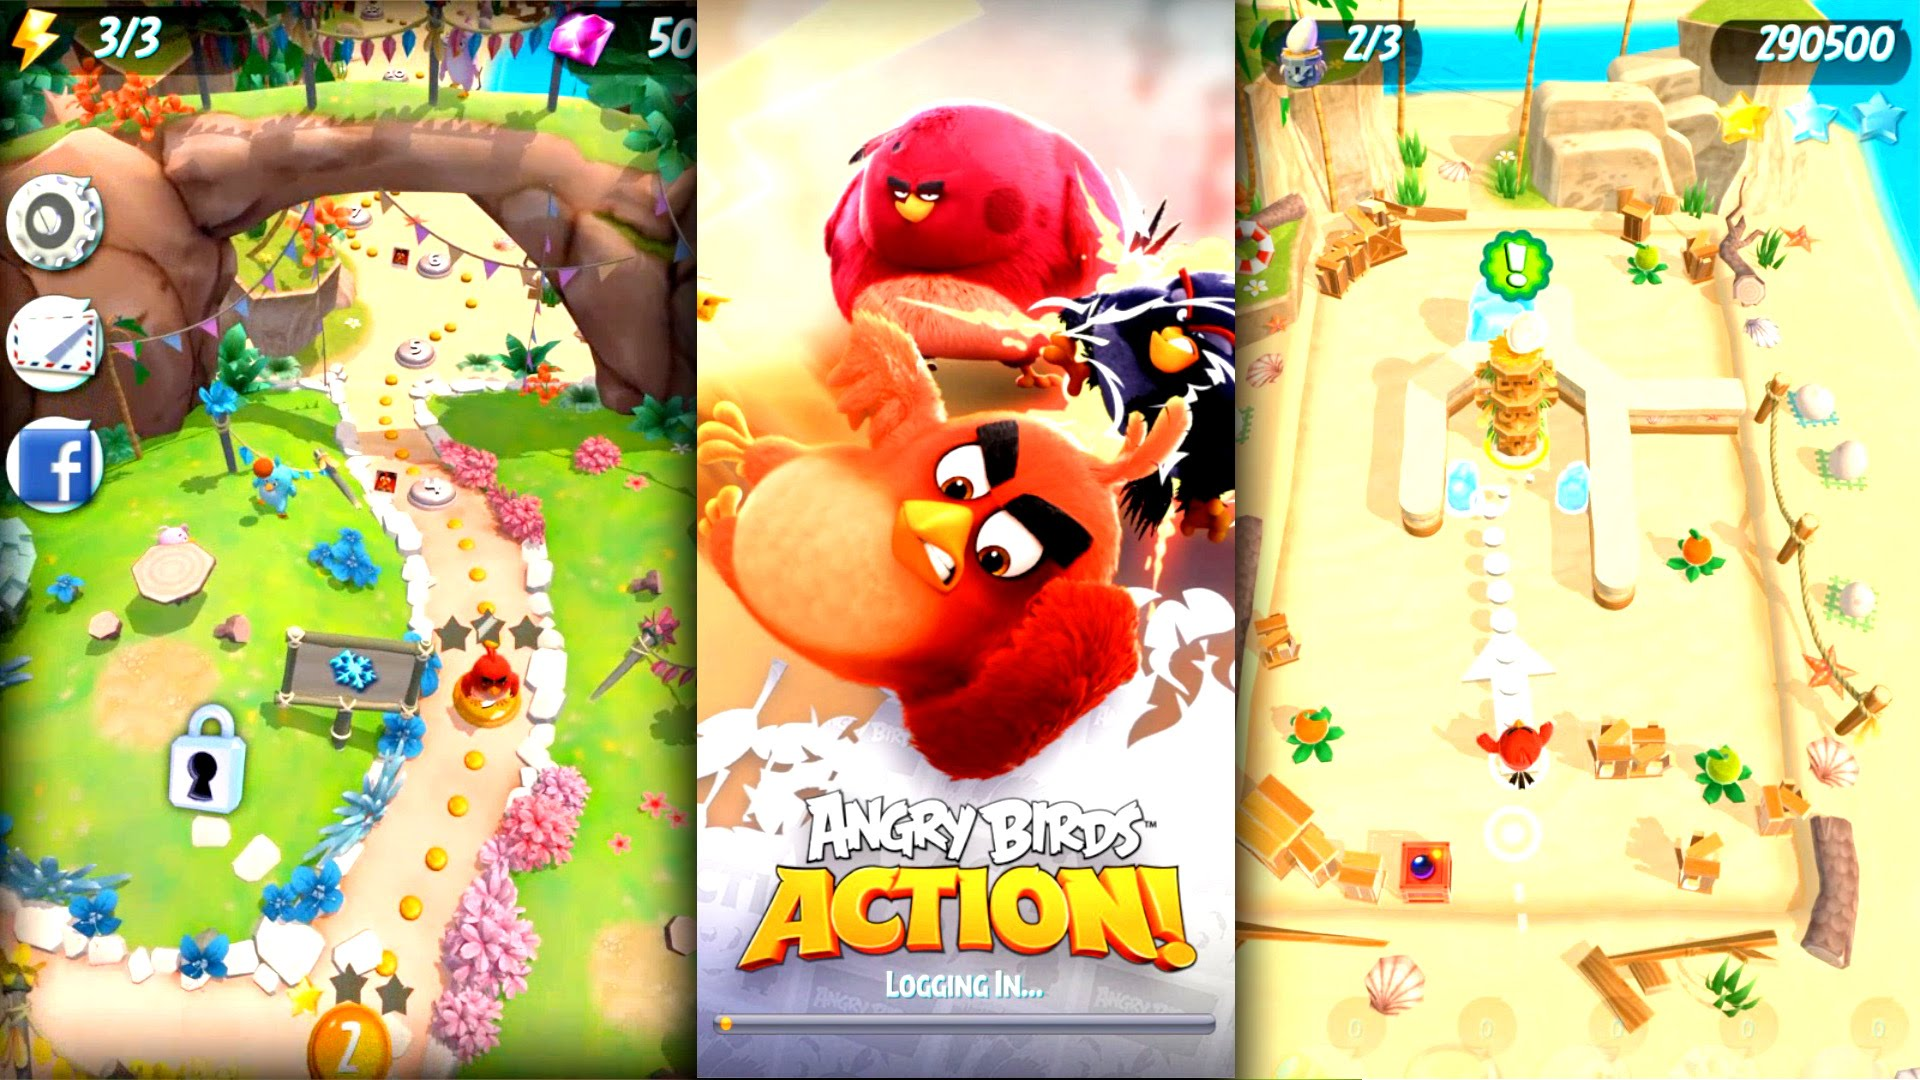 Let's Play Angry Birds Action! – (IAP) In-App Purchase Analysis